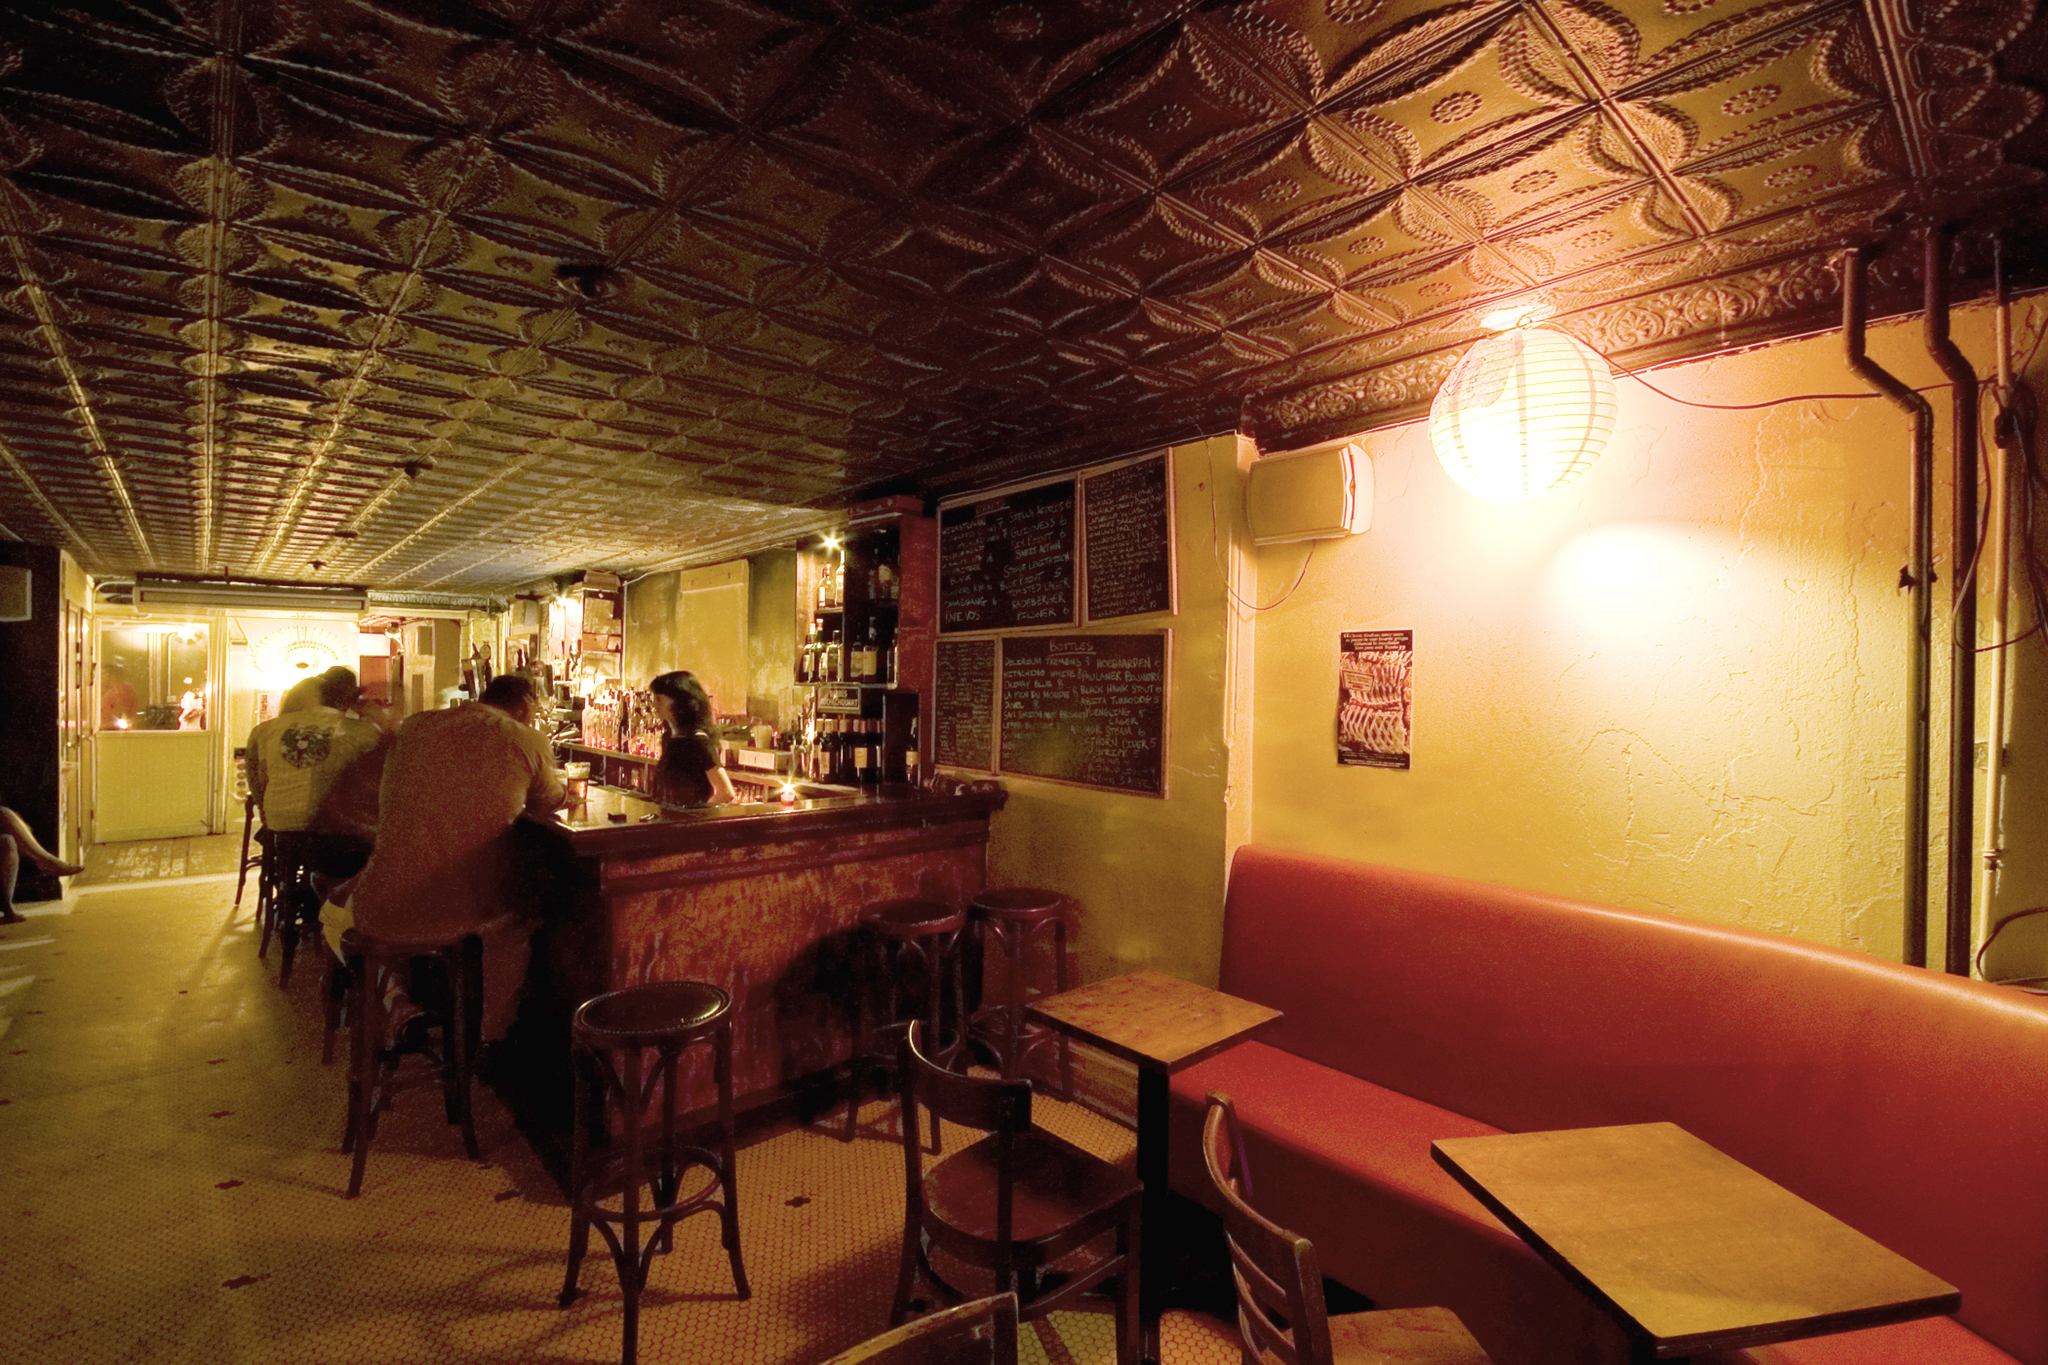 Enjoy world music at Barbès